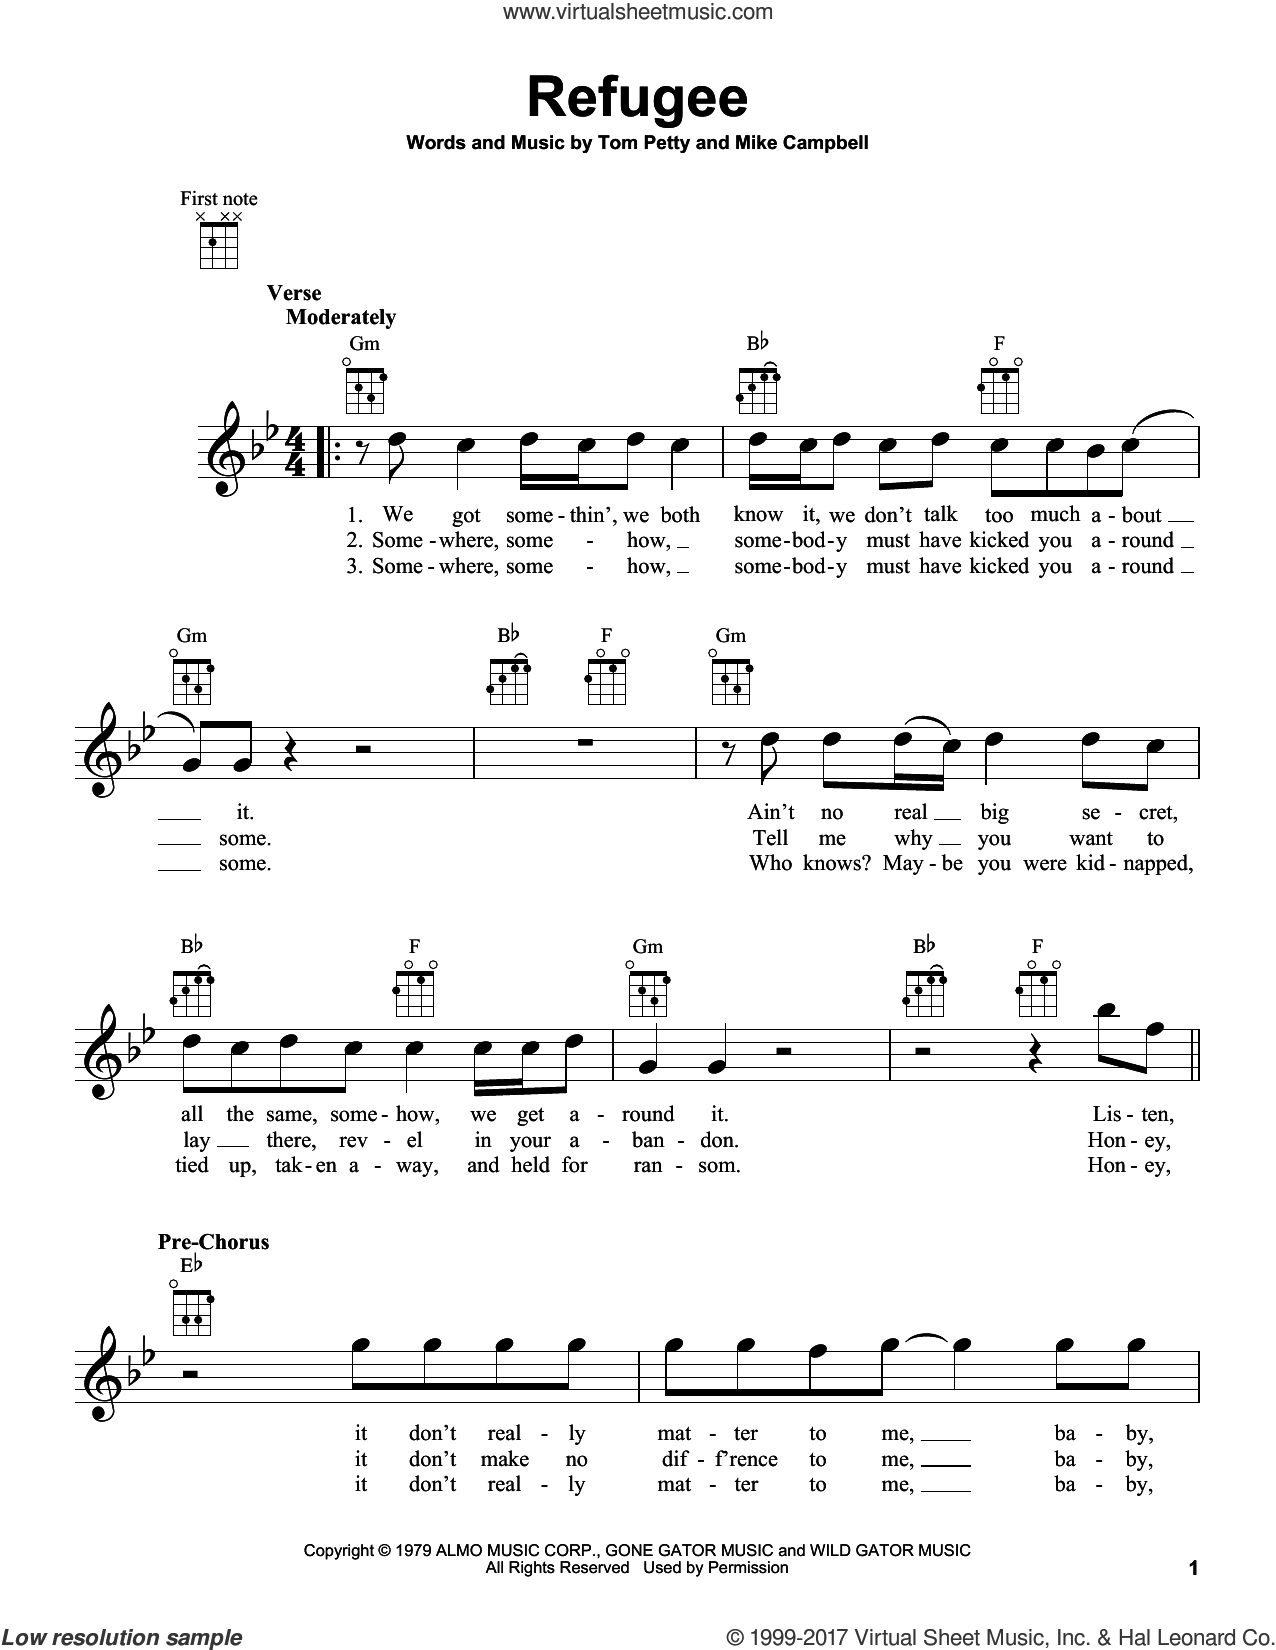 Refugee sheet music for ukulele by Tom Petty and Mike Campbell, intermediate skill level